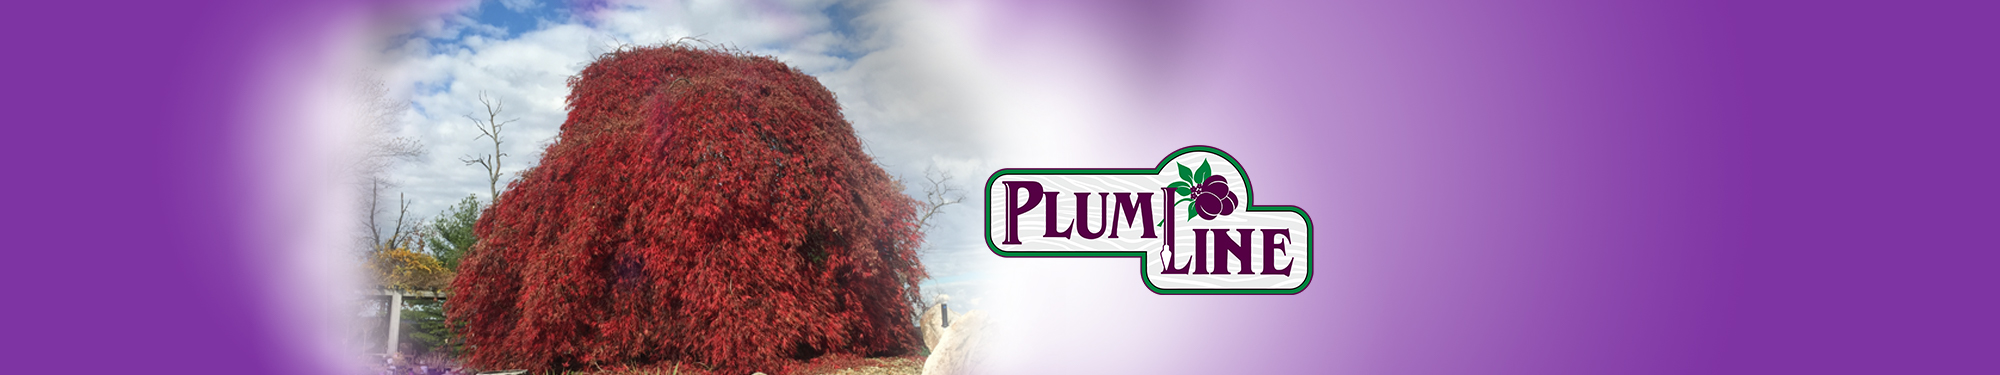 Plumline Nursery Red Tree Banner